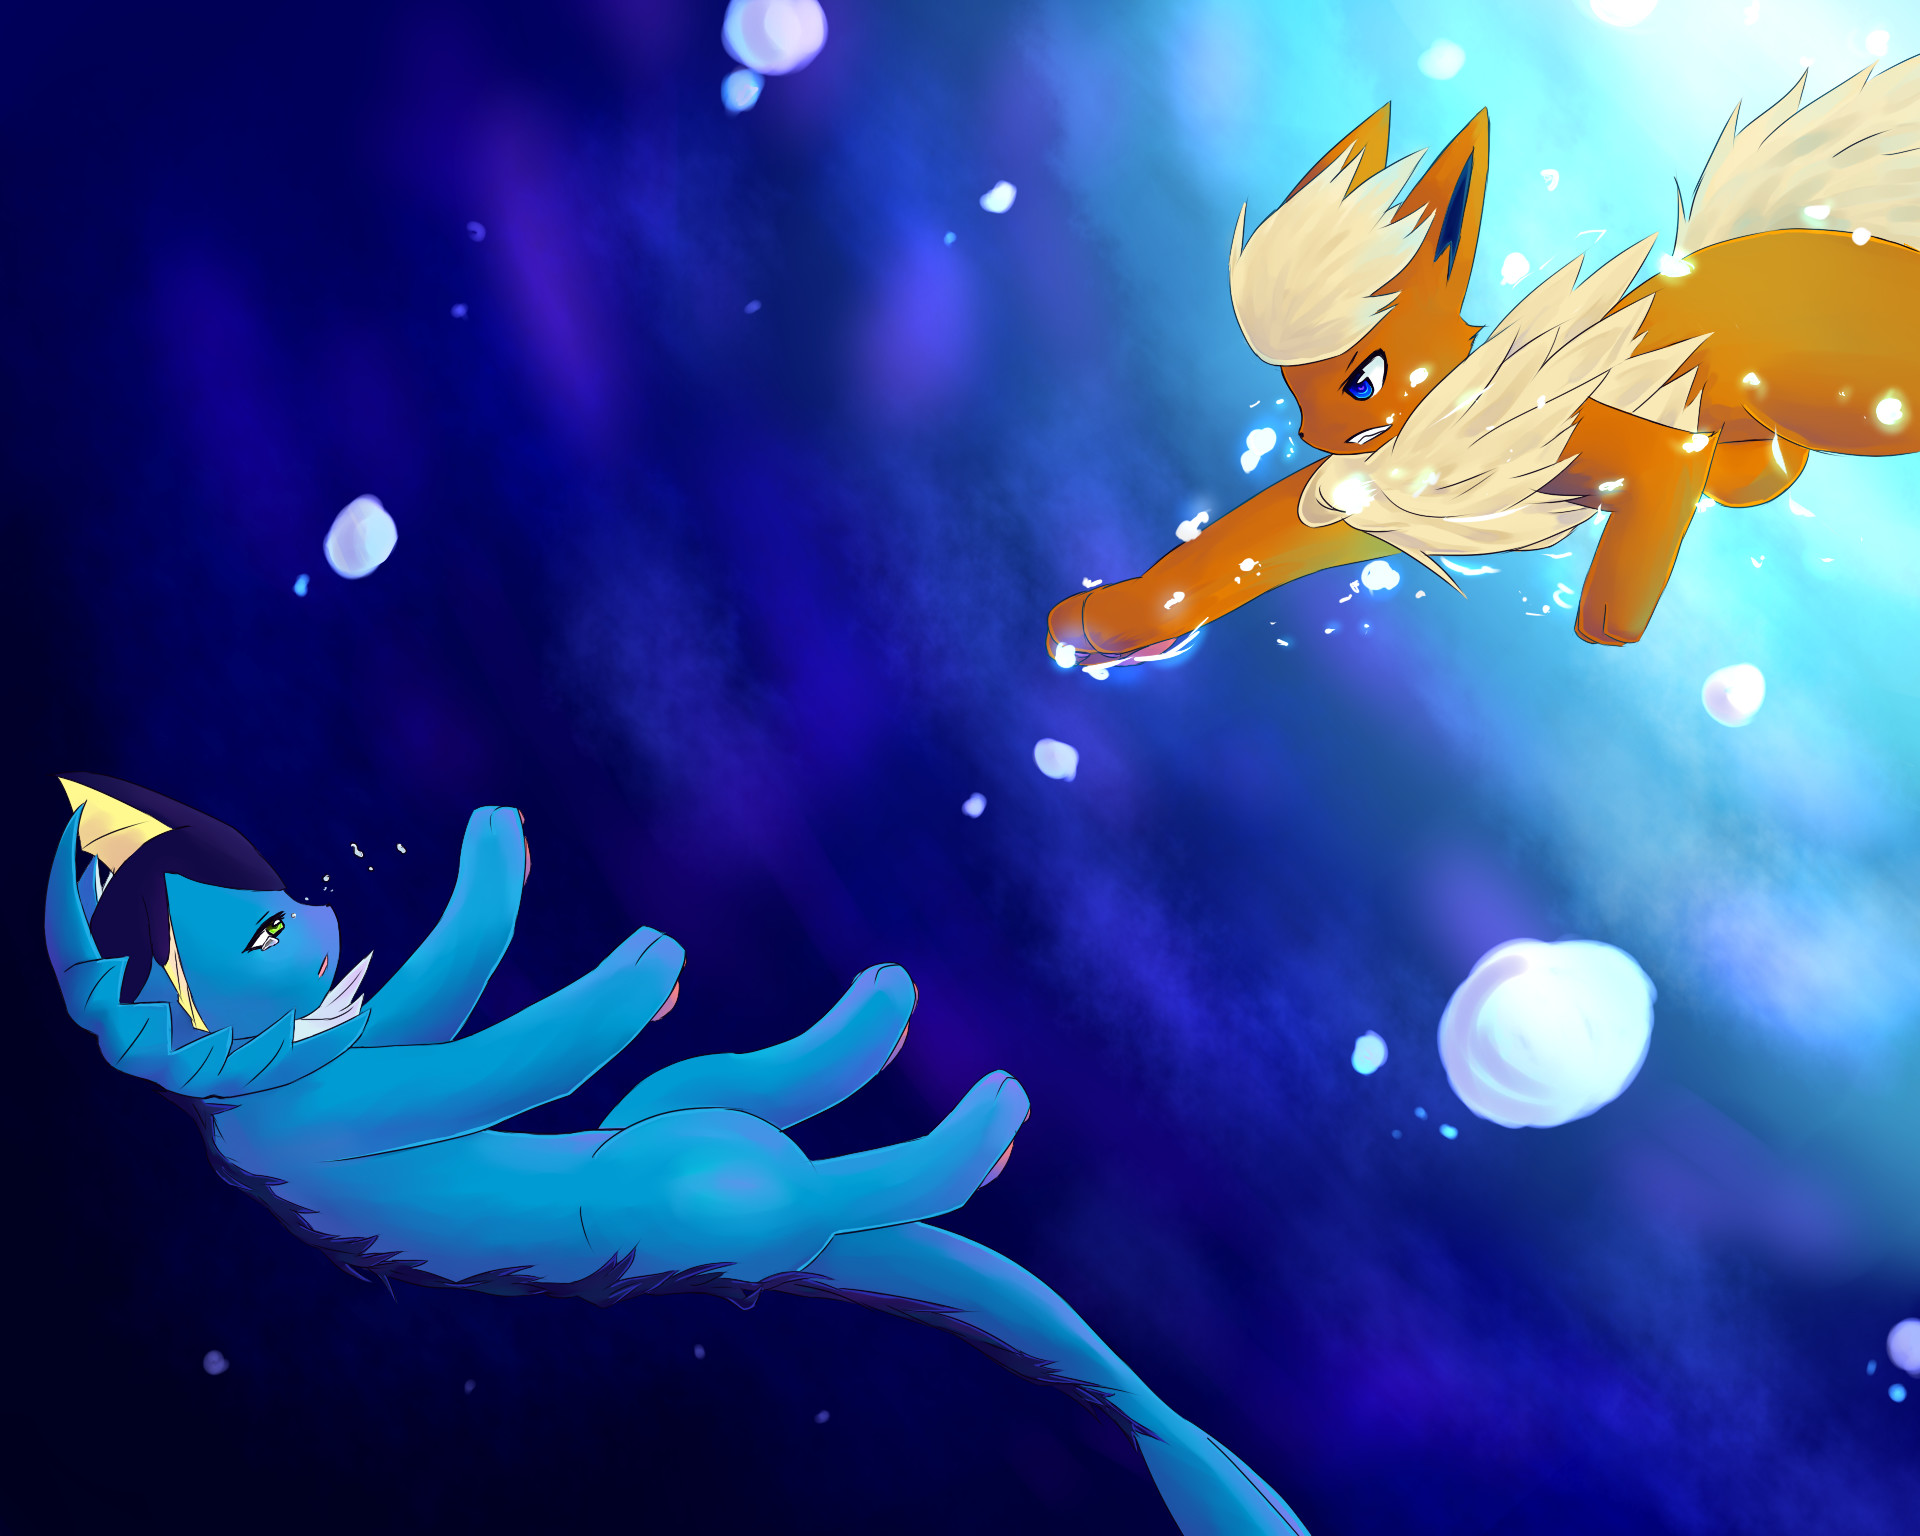 Umbreon Wallpaper (79+ images) |Vaporeon And Glaceon Wallpaper